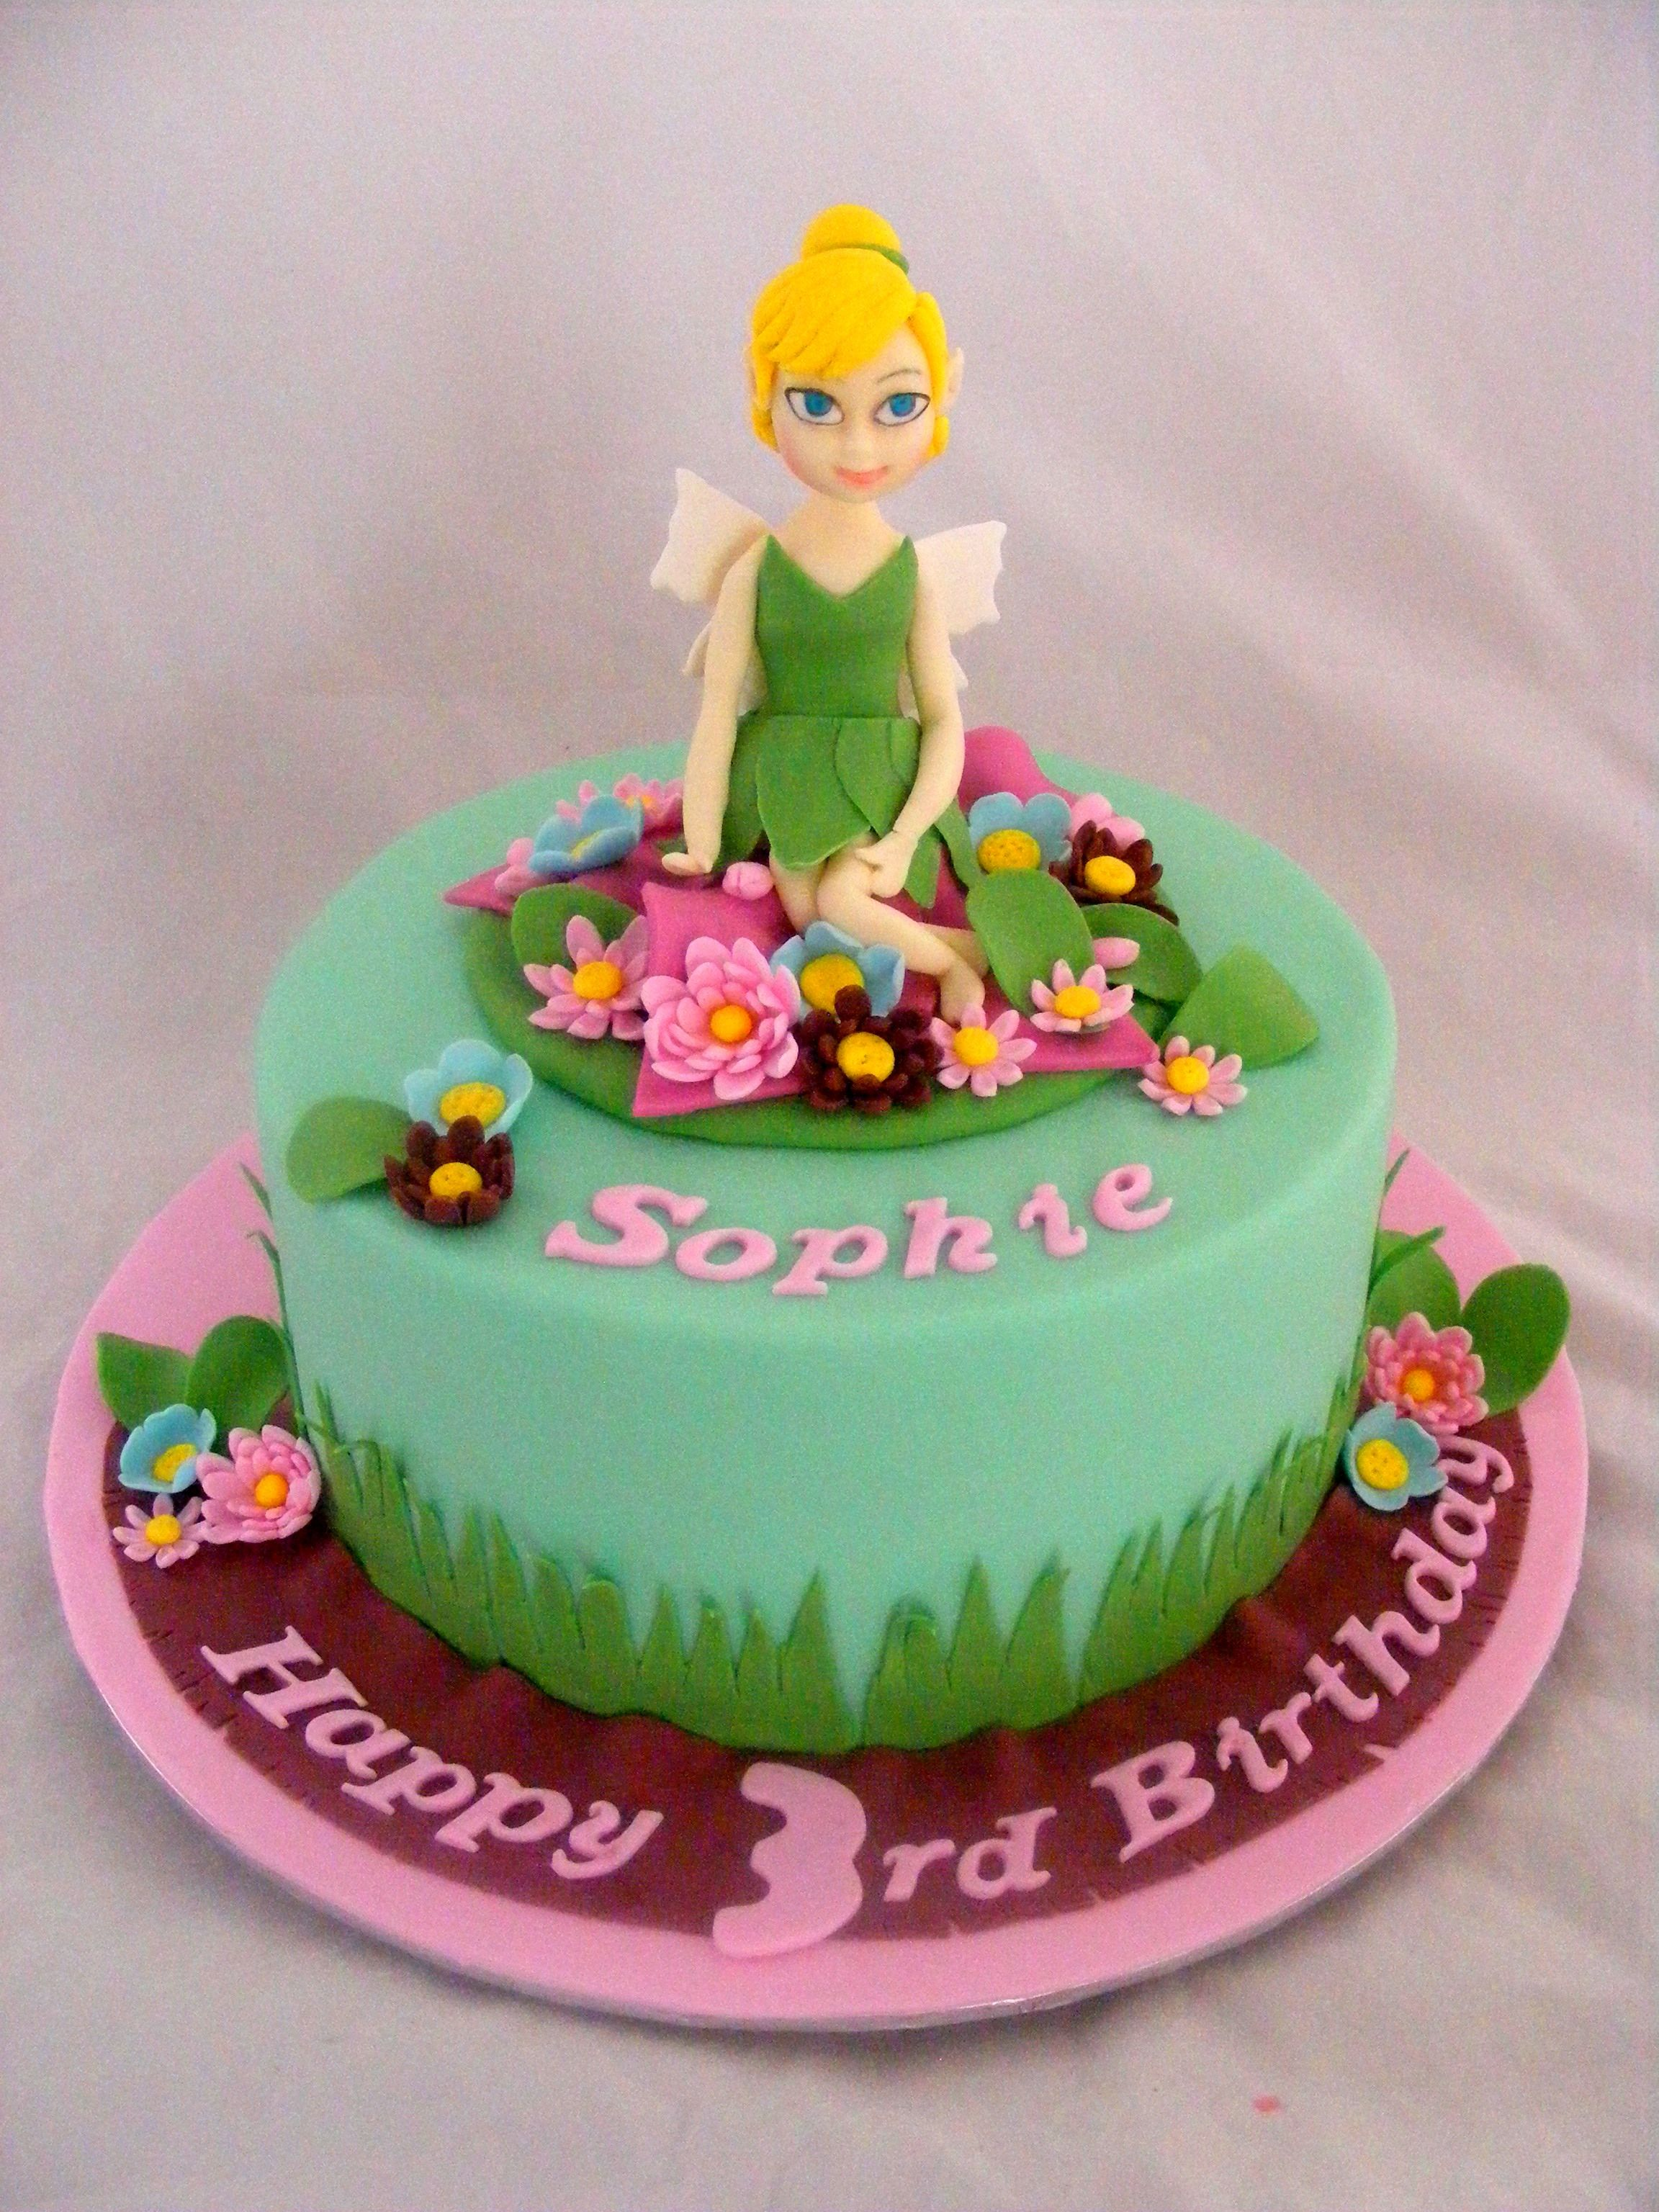 Pin by Vlbickett on Birthday Ideas (With images) | Cake ...